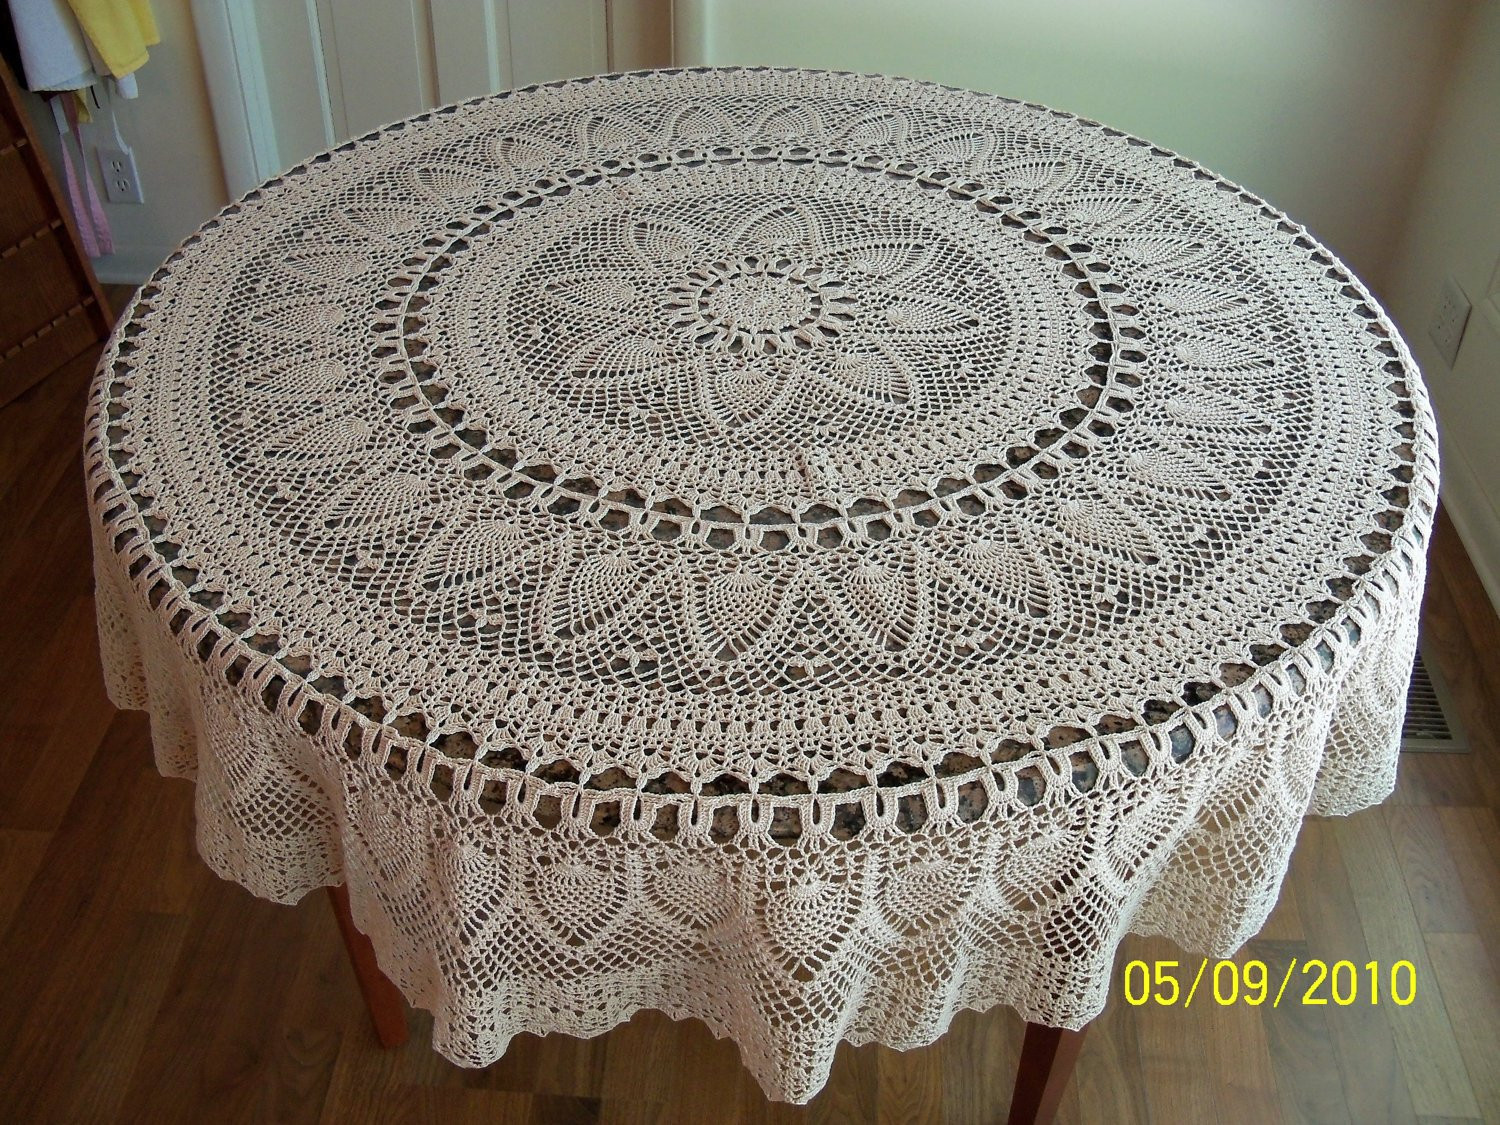 Crochet Round Tablecloths Lovely Handmade Crocheted Pineapple Tablecloth 70 Inch Round Natural Of Unique 43 Pictures Crochet Round Tablecloths